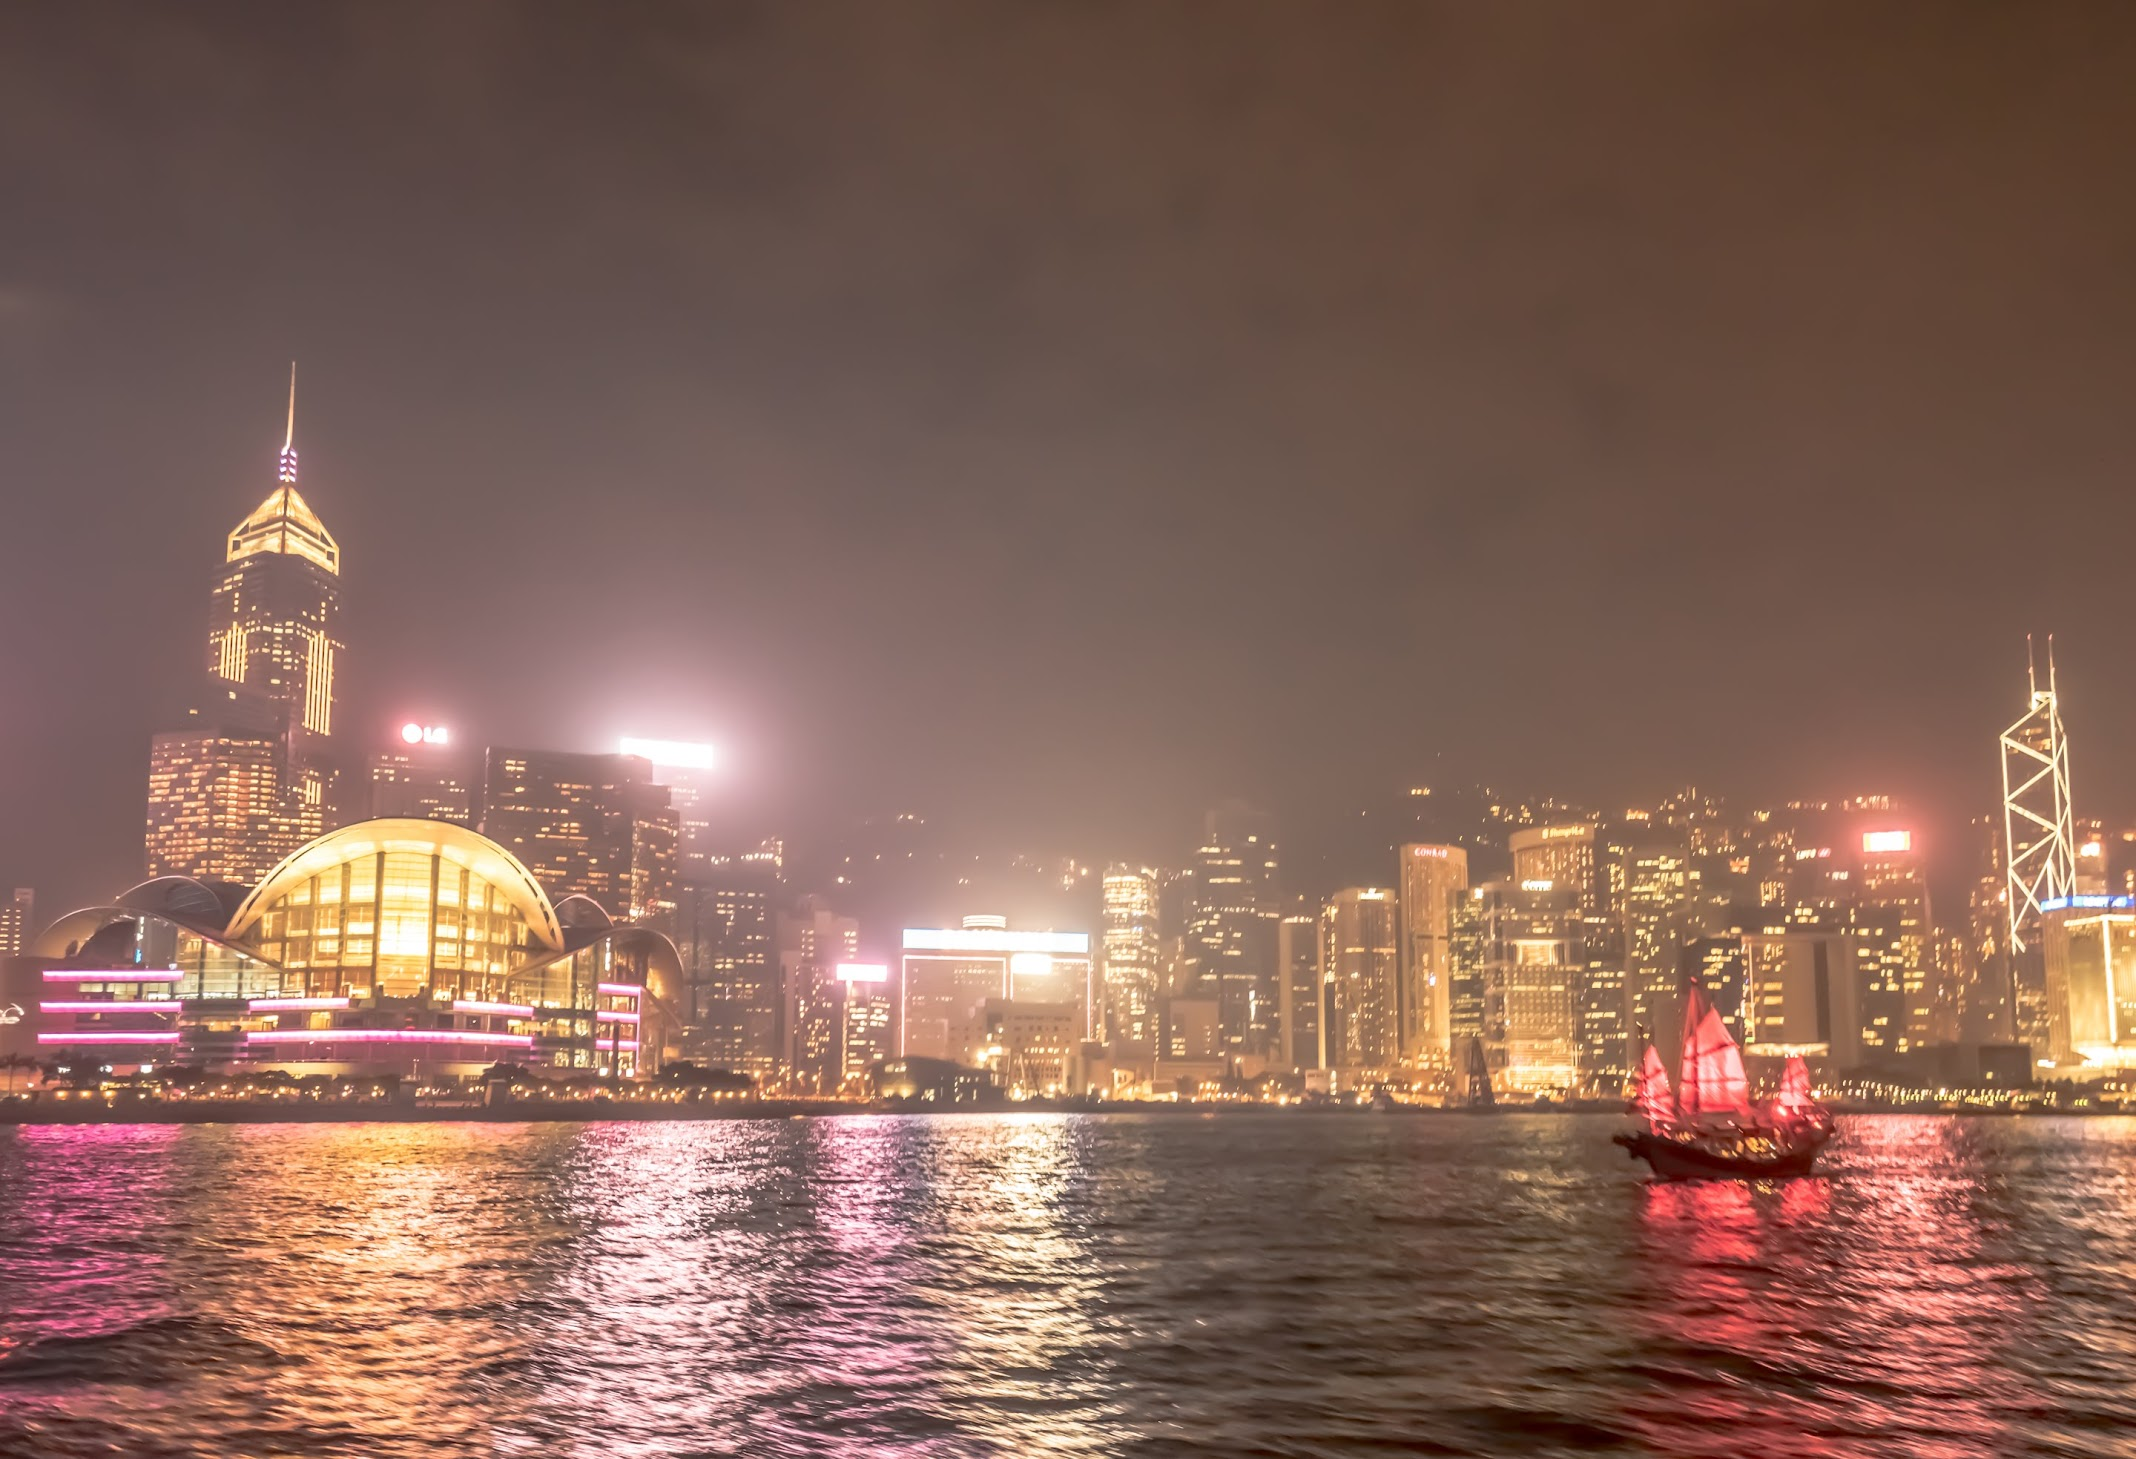 Hong Kong Star Ferry night view2